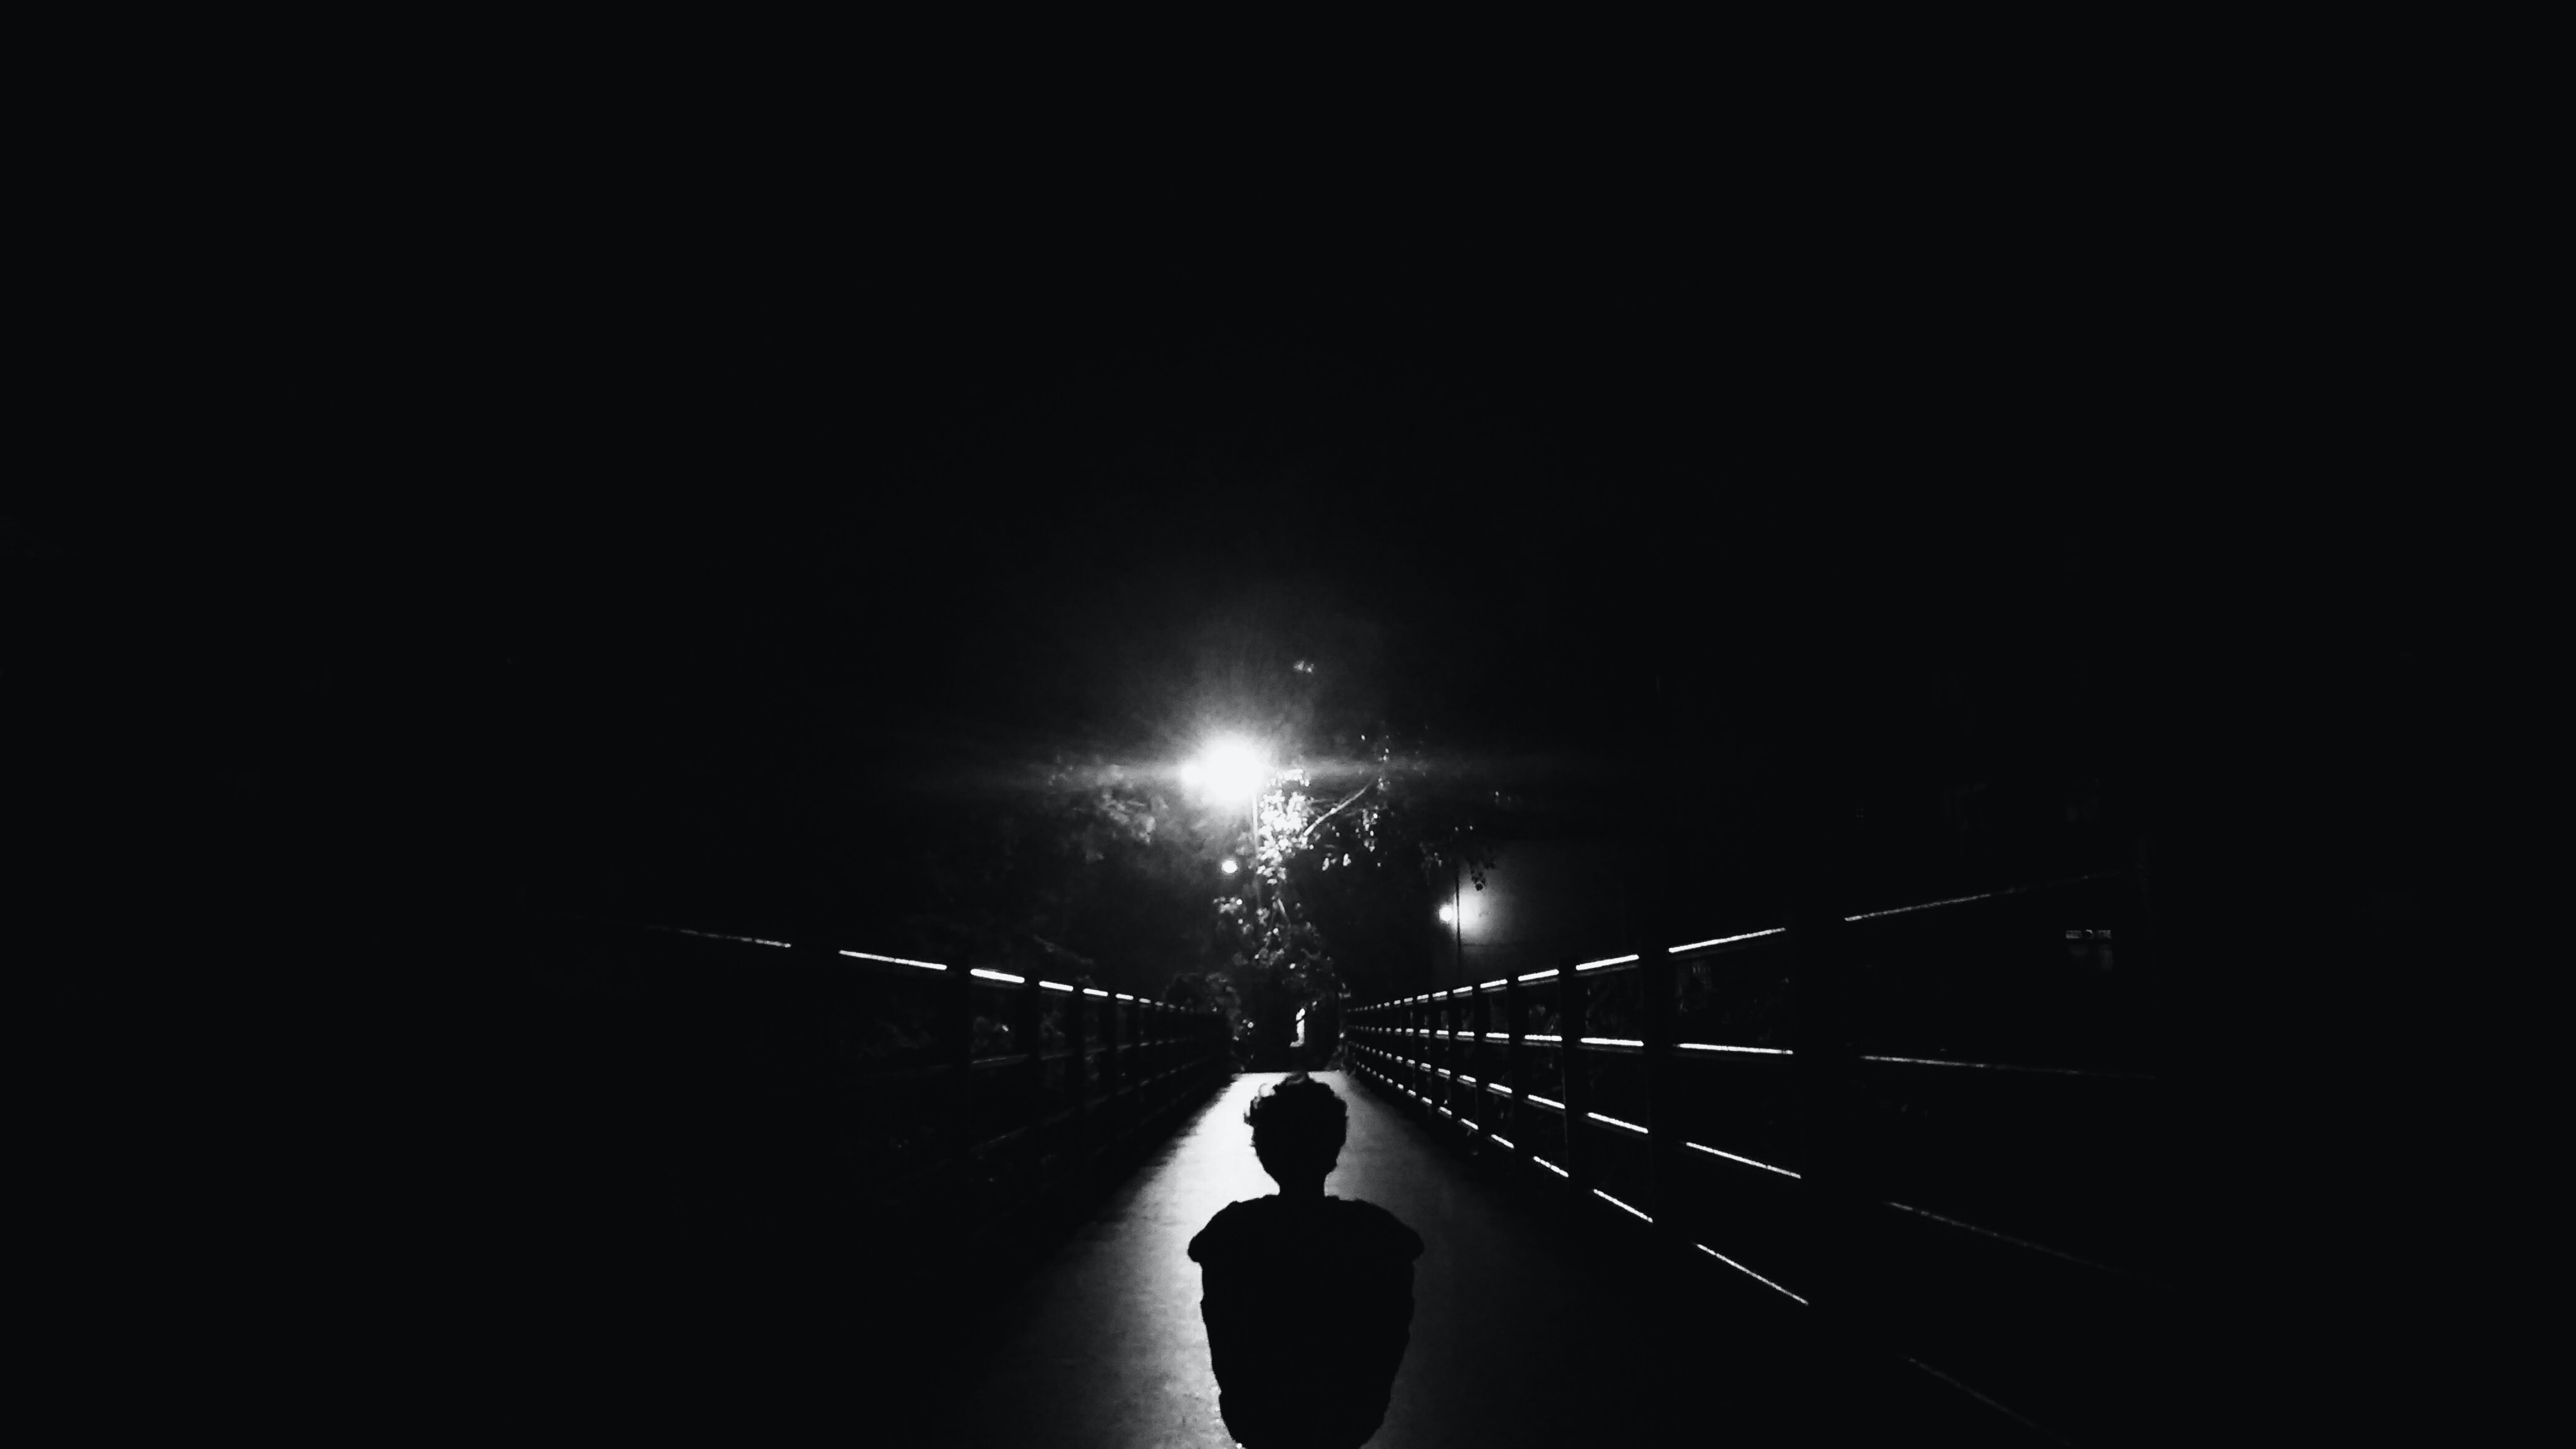 silhouette photo of child standing on bridge